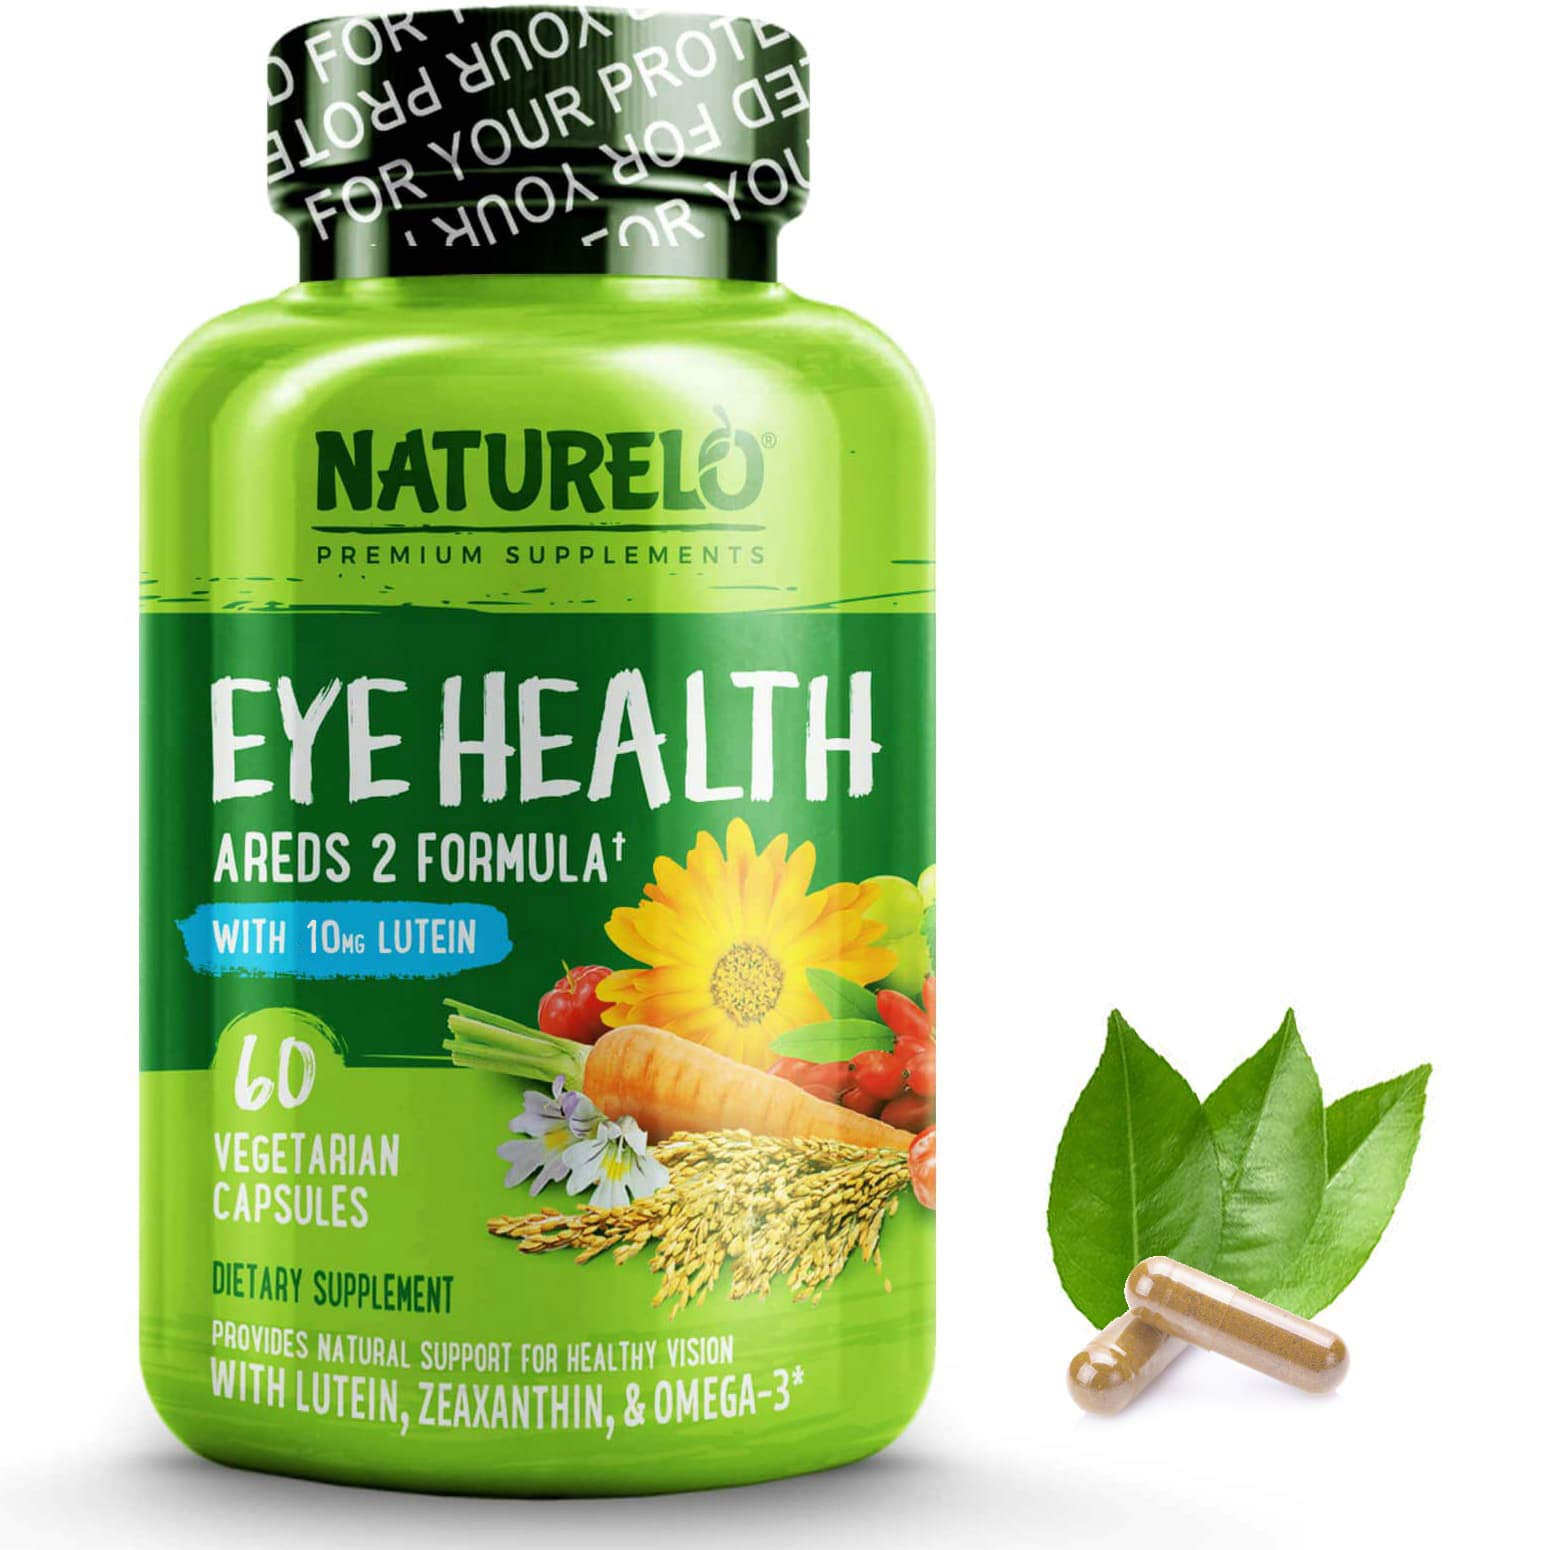 NATURELO Eye Vitamins - AREDS 2 Formula with Lutein, Zeaxanthin, Natural Vitamin C, Zinc - Best Supplement for Dry Eyes, Vision Preservation, Eye Health, Macular Support - 60 Vegan Capsules by NATURELO